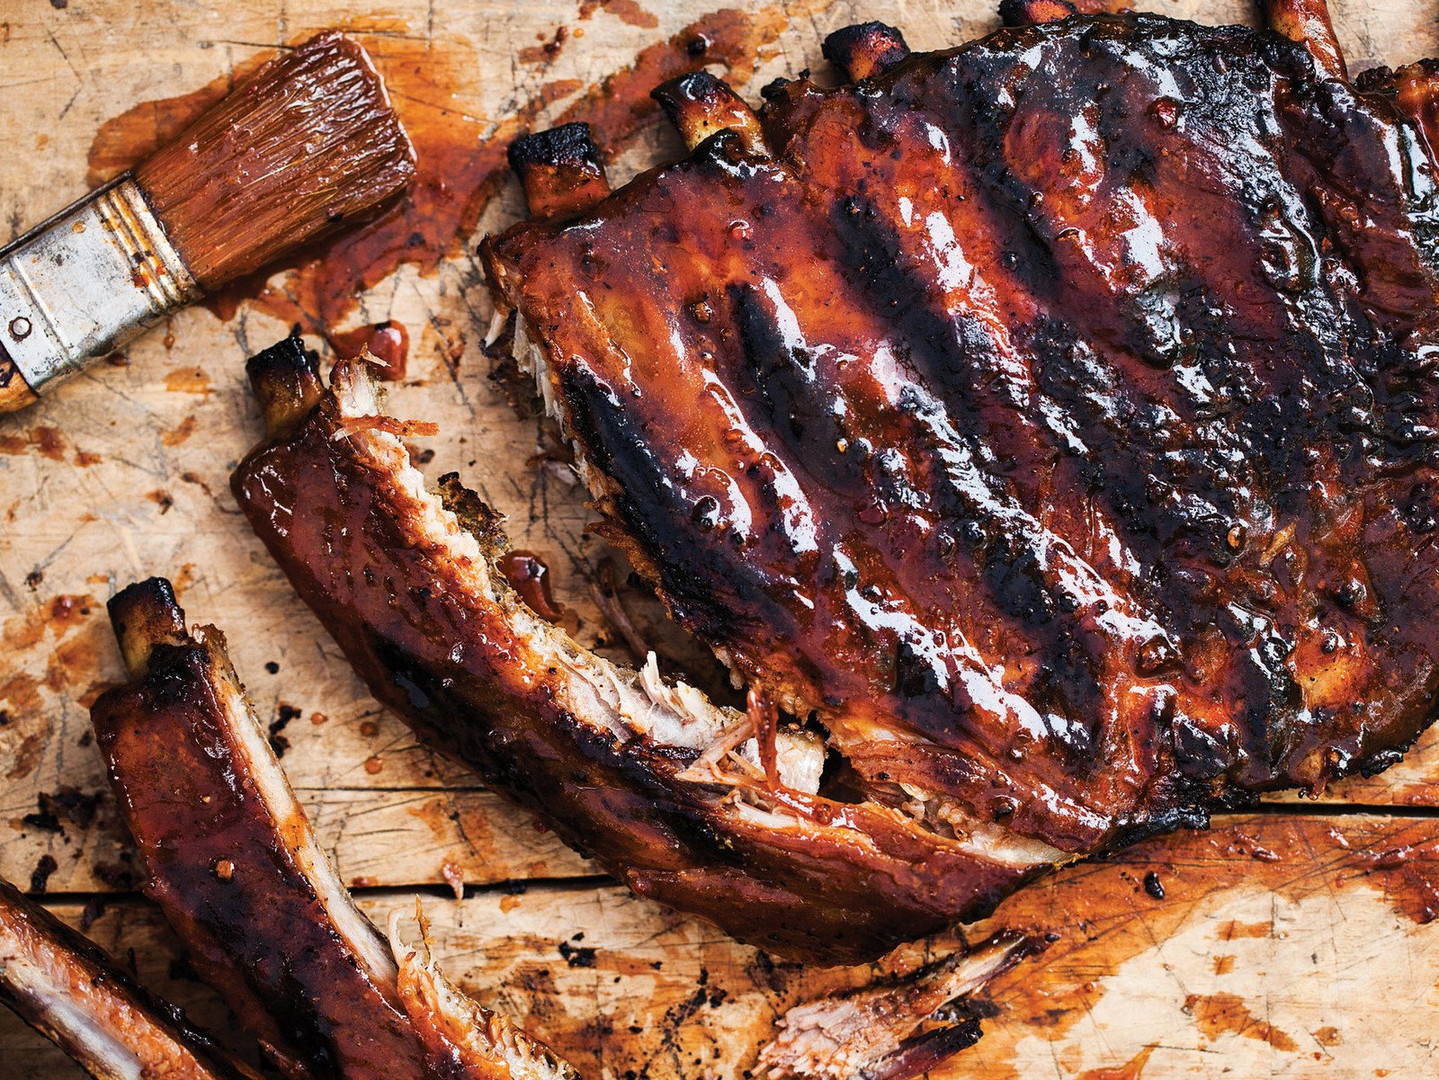 barbecue-ribs-on-grill-wallpaper.jpg